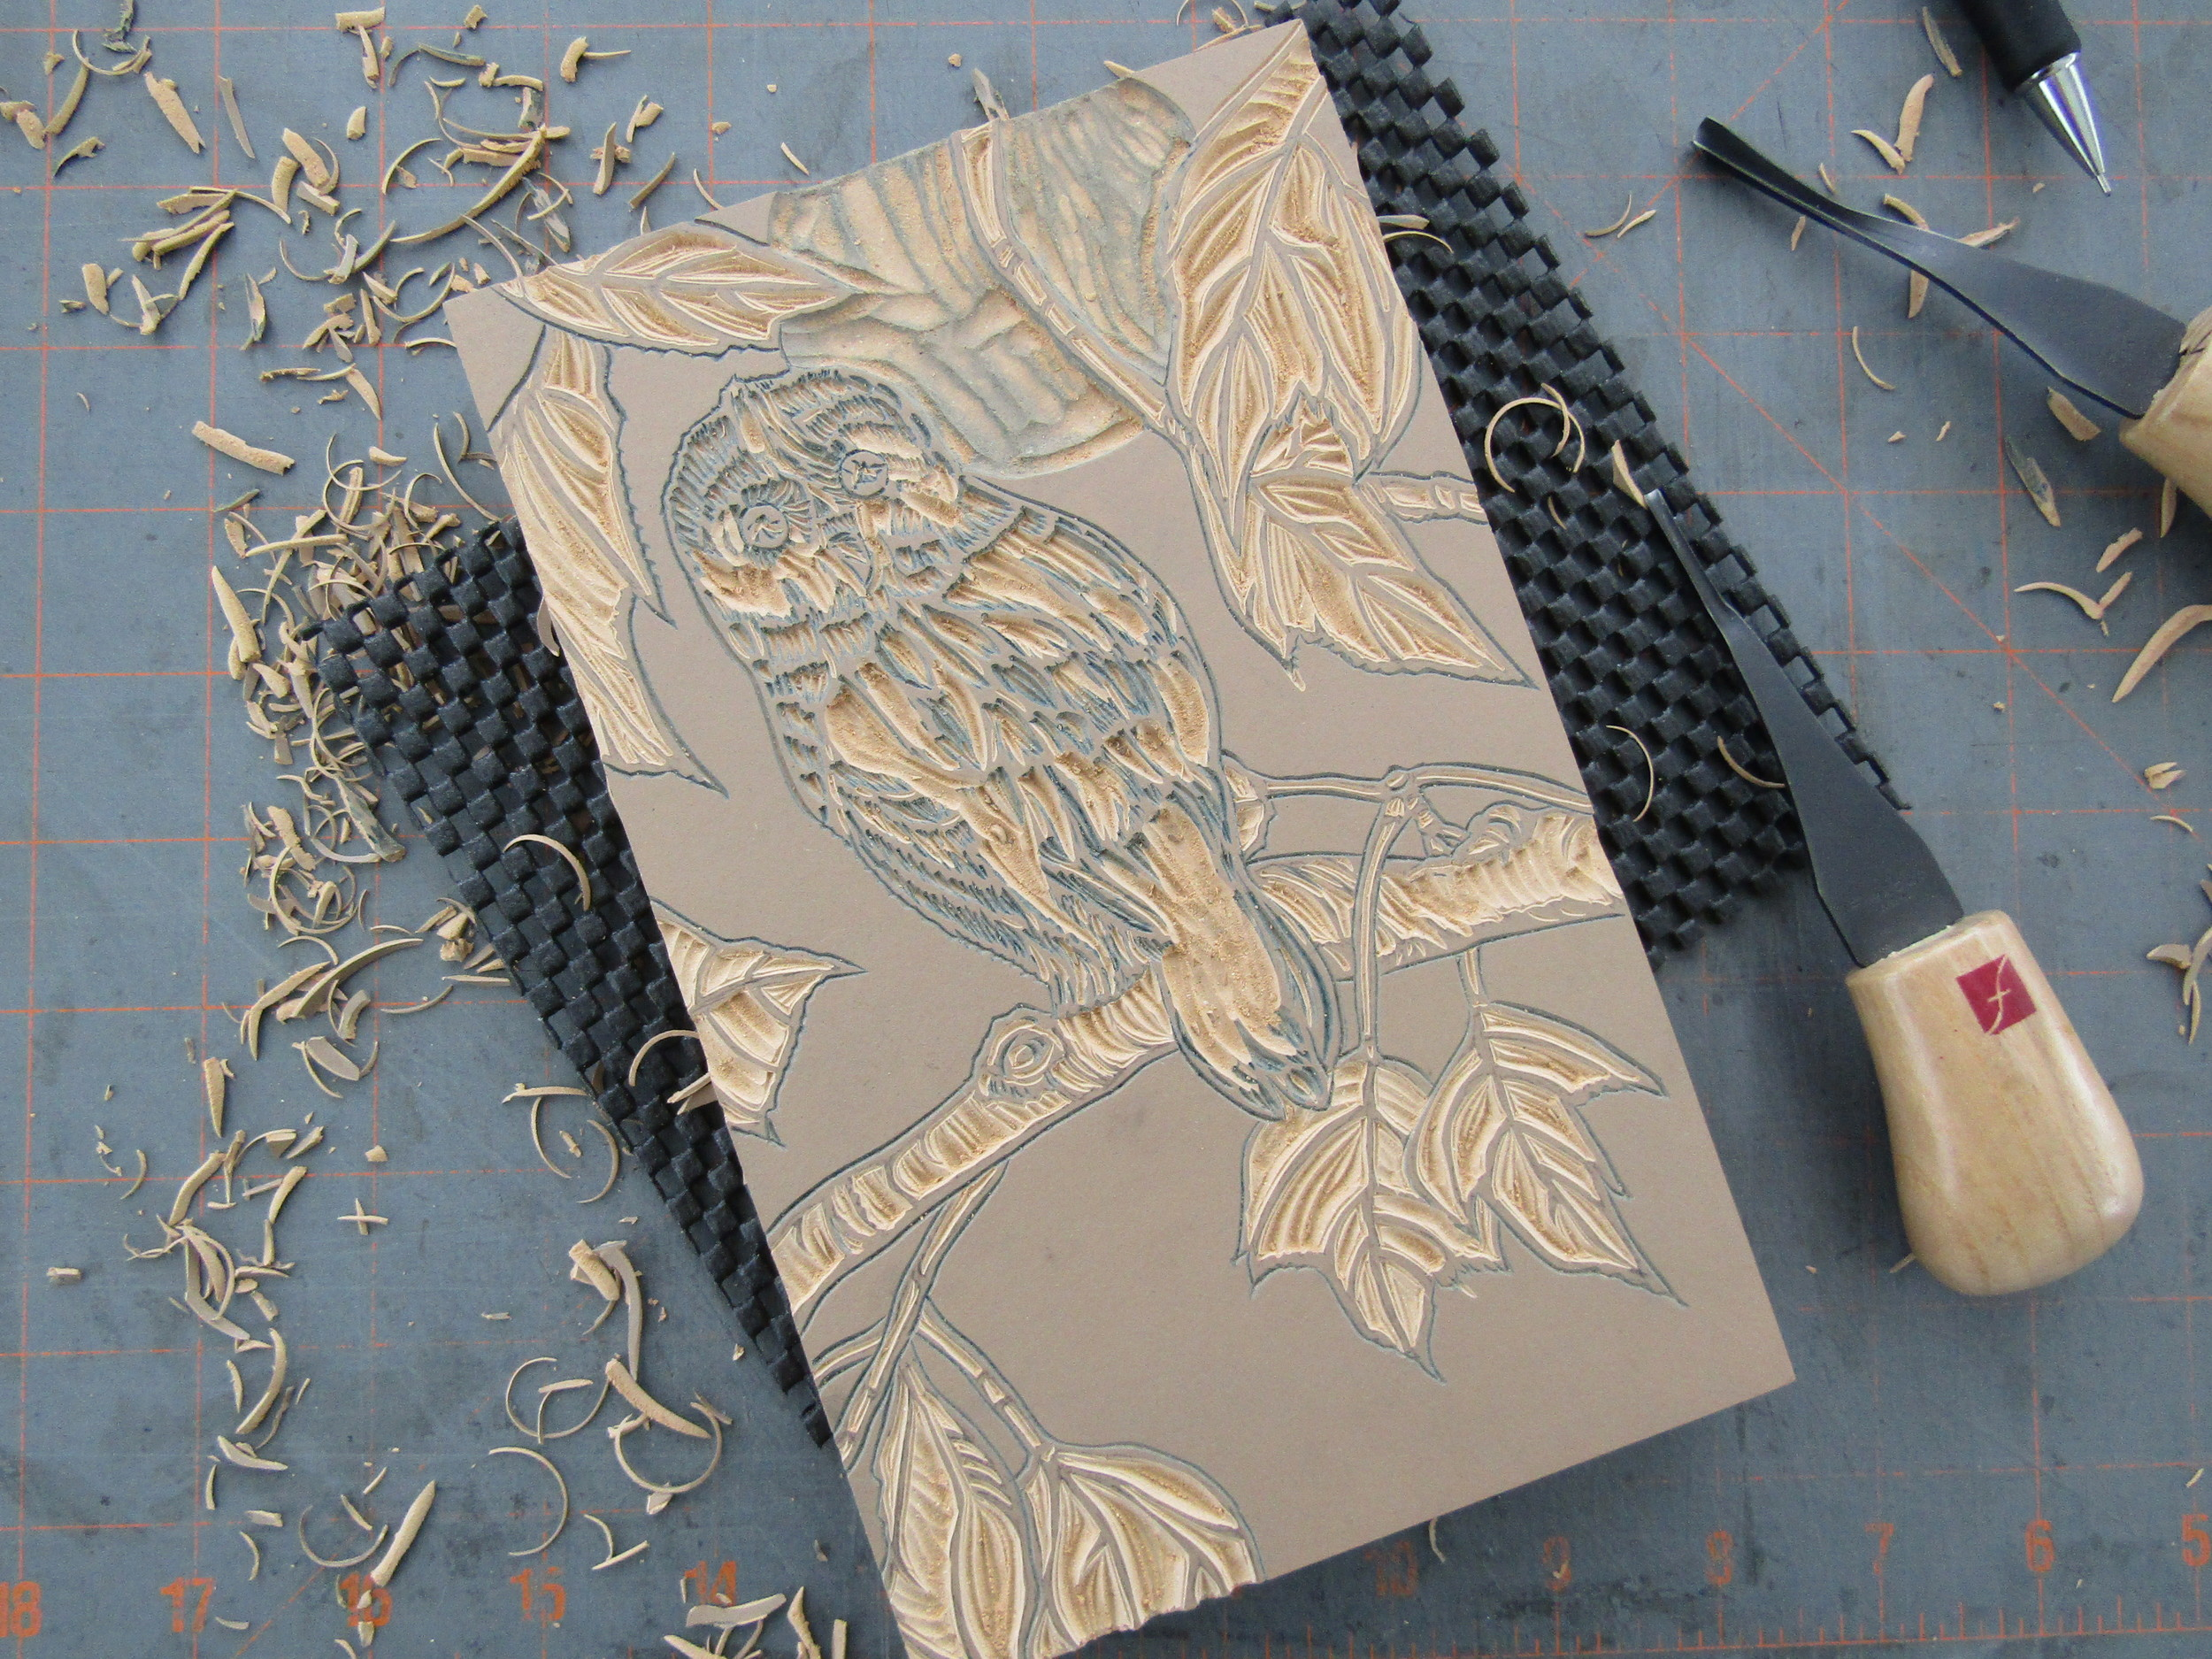 Carving continues; developing the image.